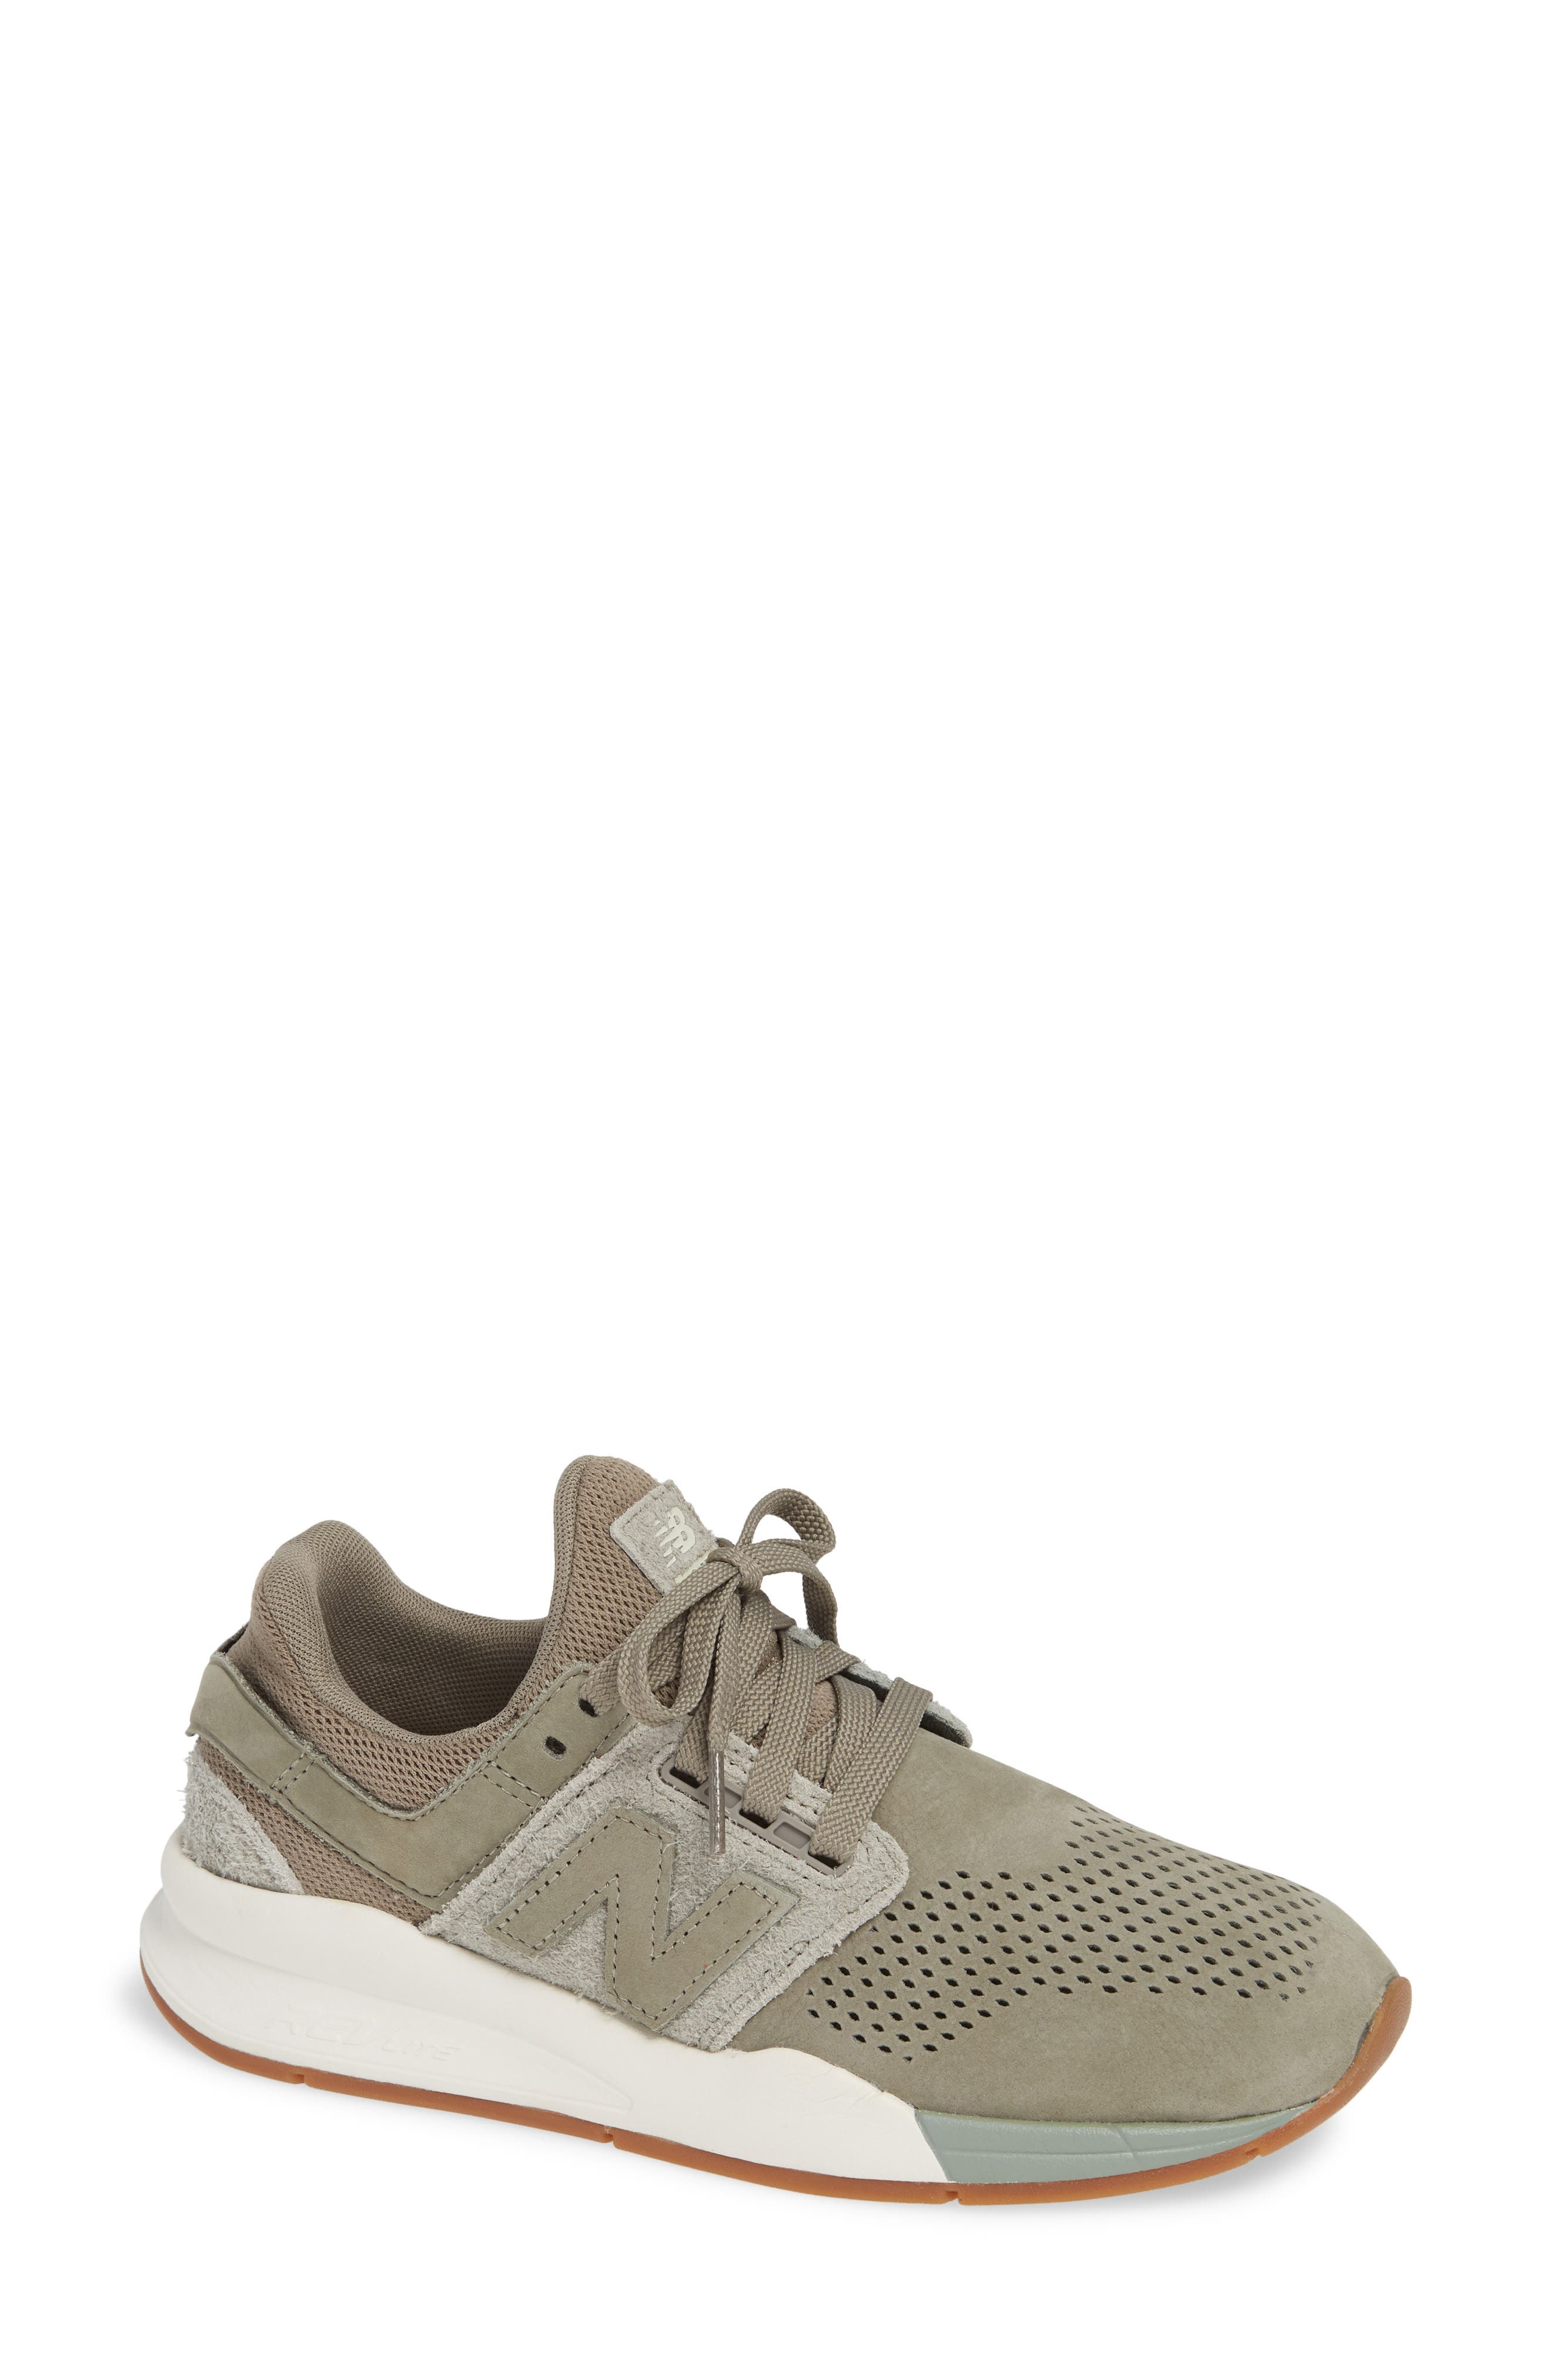 NEW BALANCE Sport Style 247 Sneaker, Main, color, MILITARY URBAN GREY